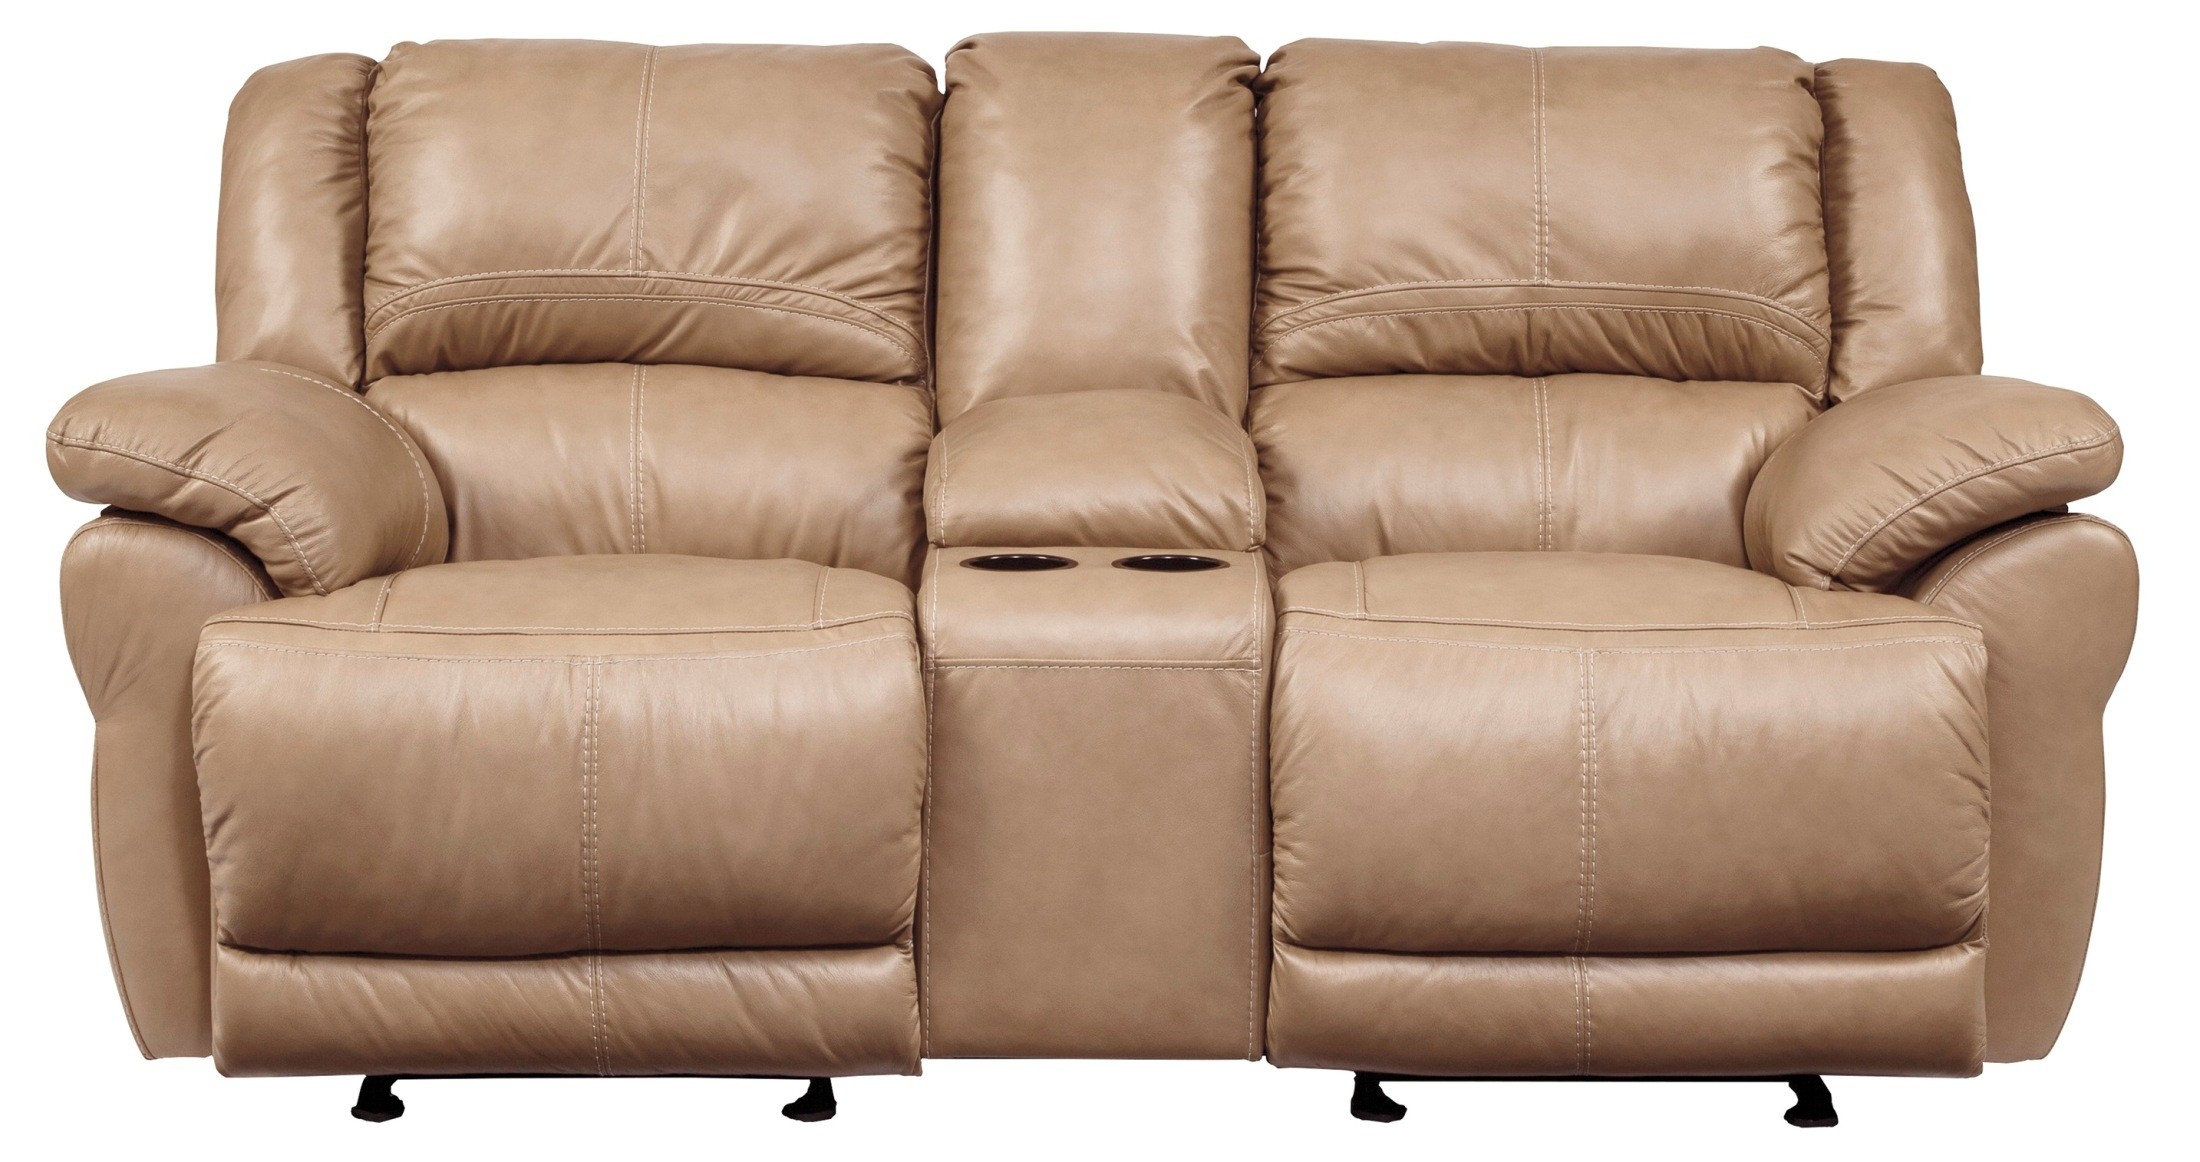 glider sofa chaise lounge single bed lenoris caramel power reclining loveseat with